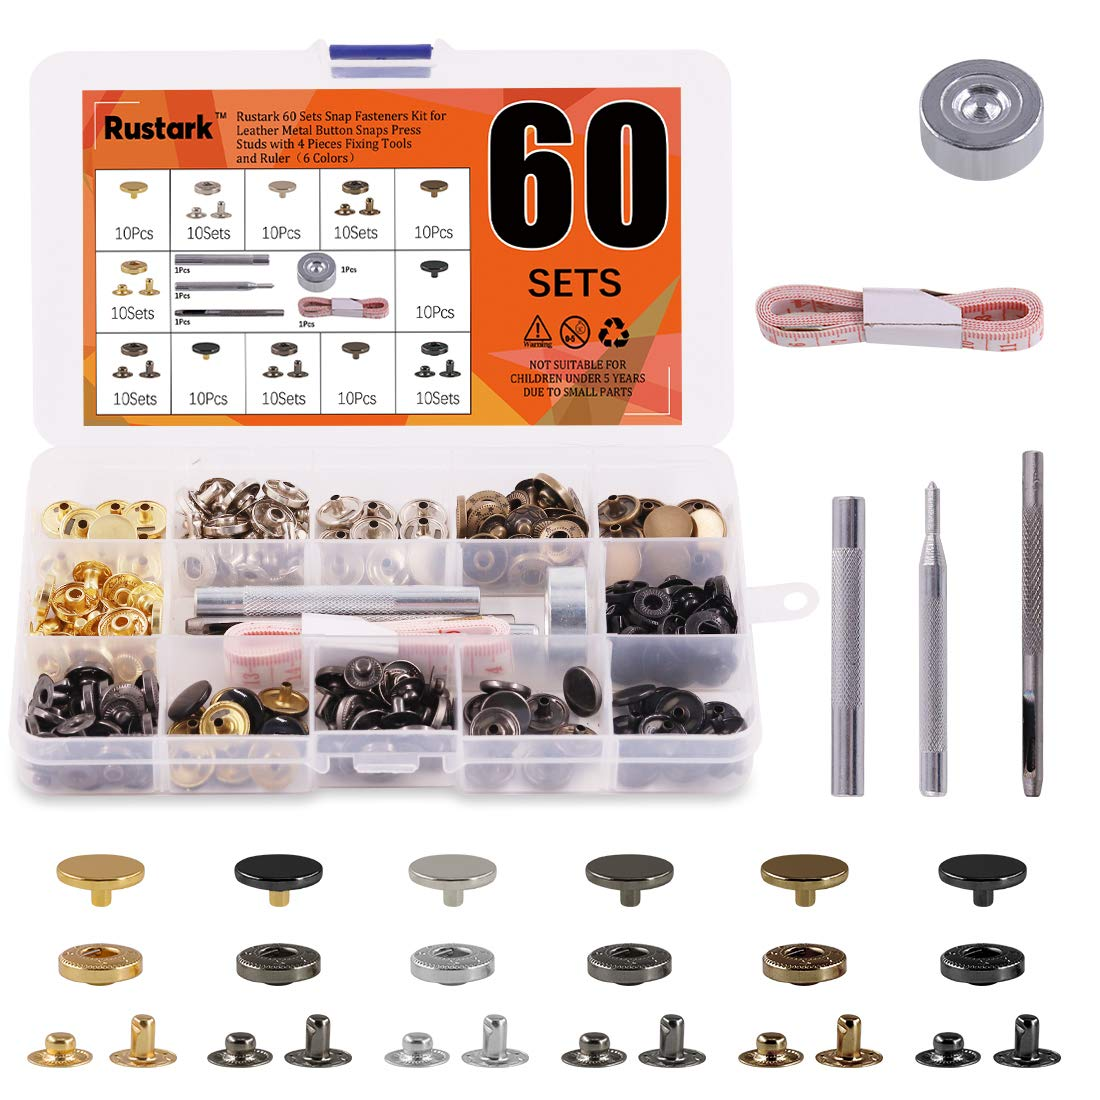 Rustark 60 Sets Snap Fasteners Kit for Leather Metal Button Snaps Press Studs with 4 Pieces Fixing Tools and Ruler Snap Rivet Fasteners for Clothing Coat Bracelet Jacket and Crafting (6 Colors)